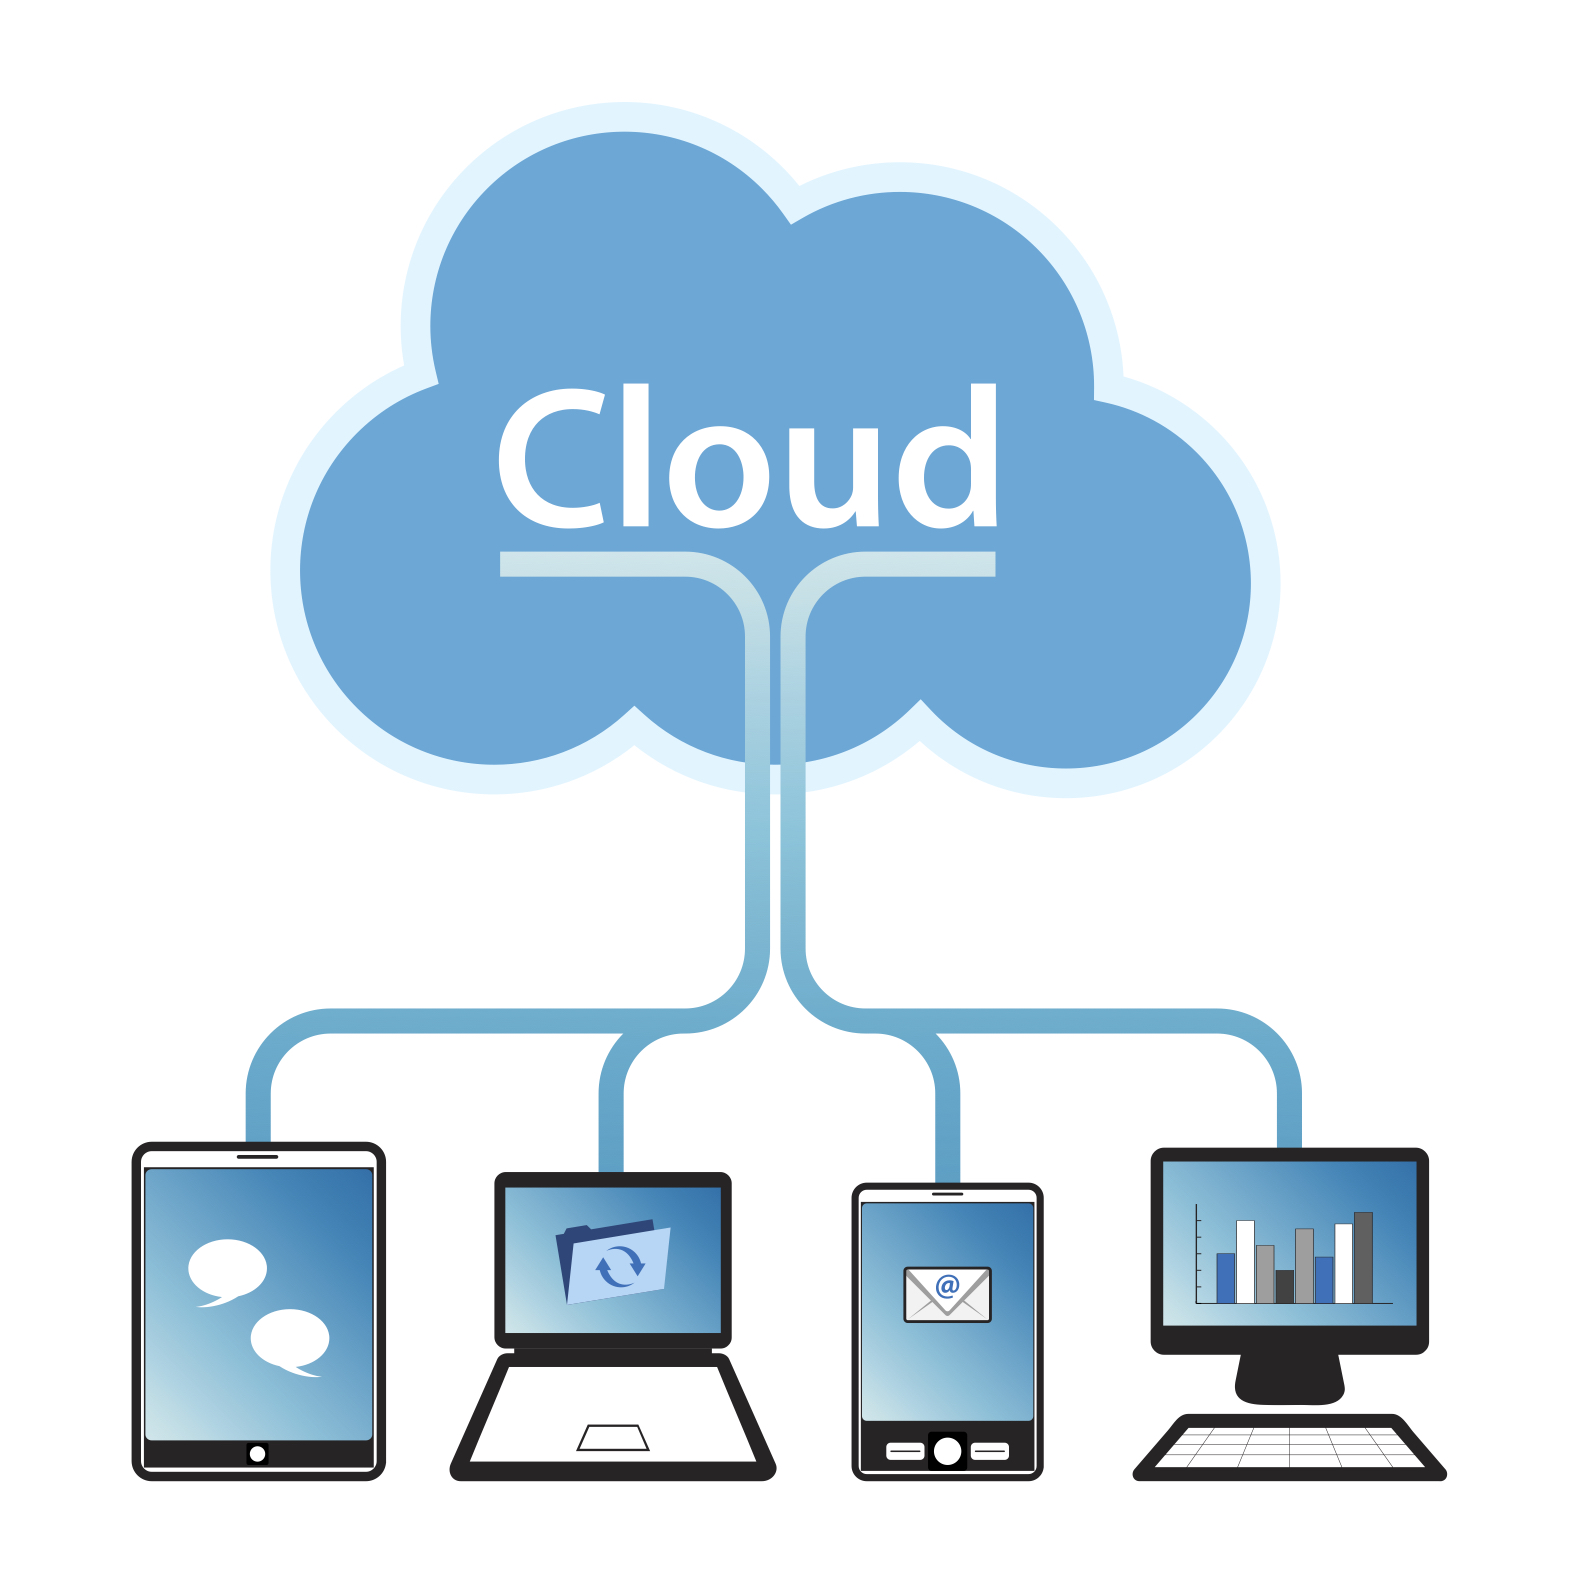 Multiple devices can link up to your Cloud